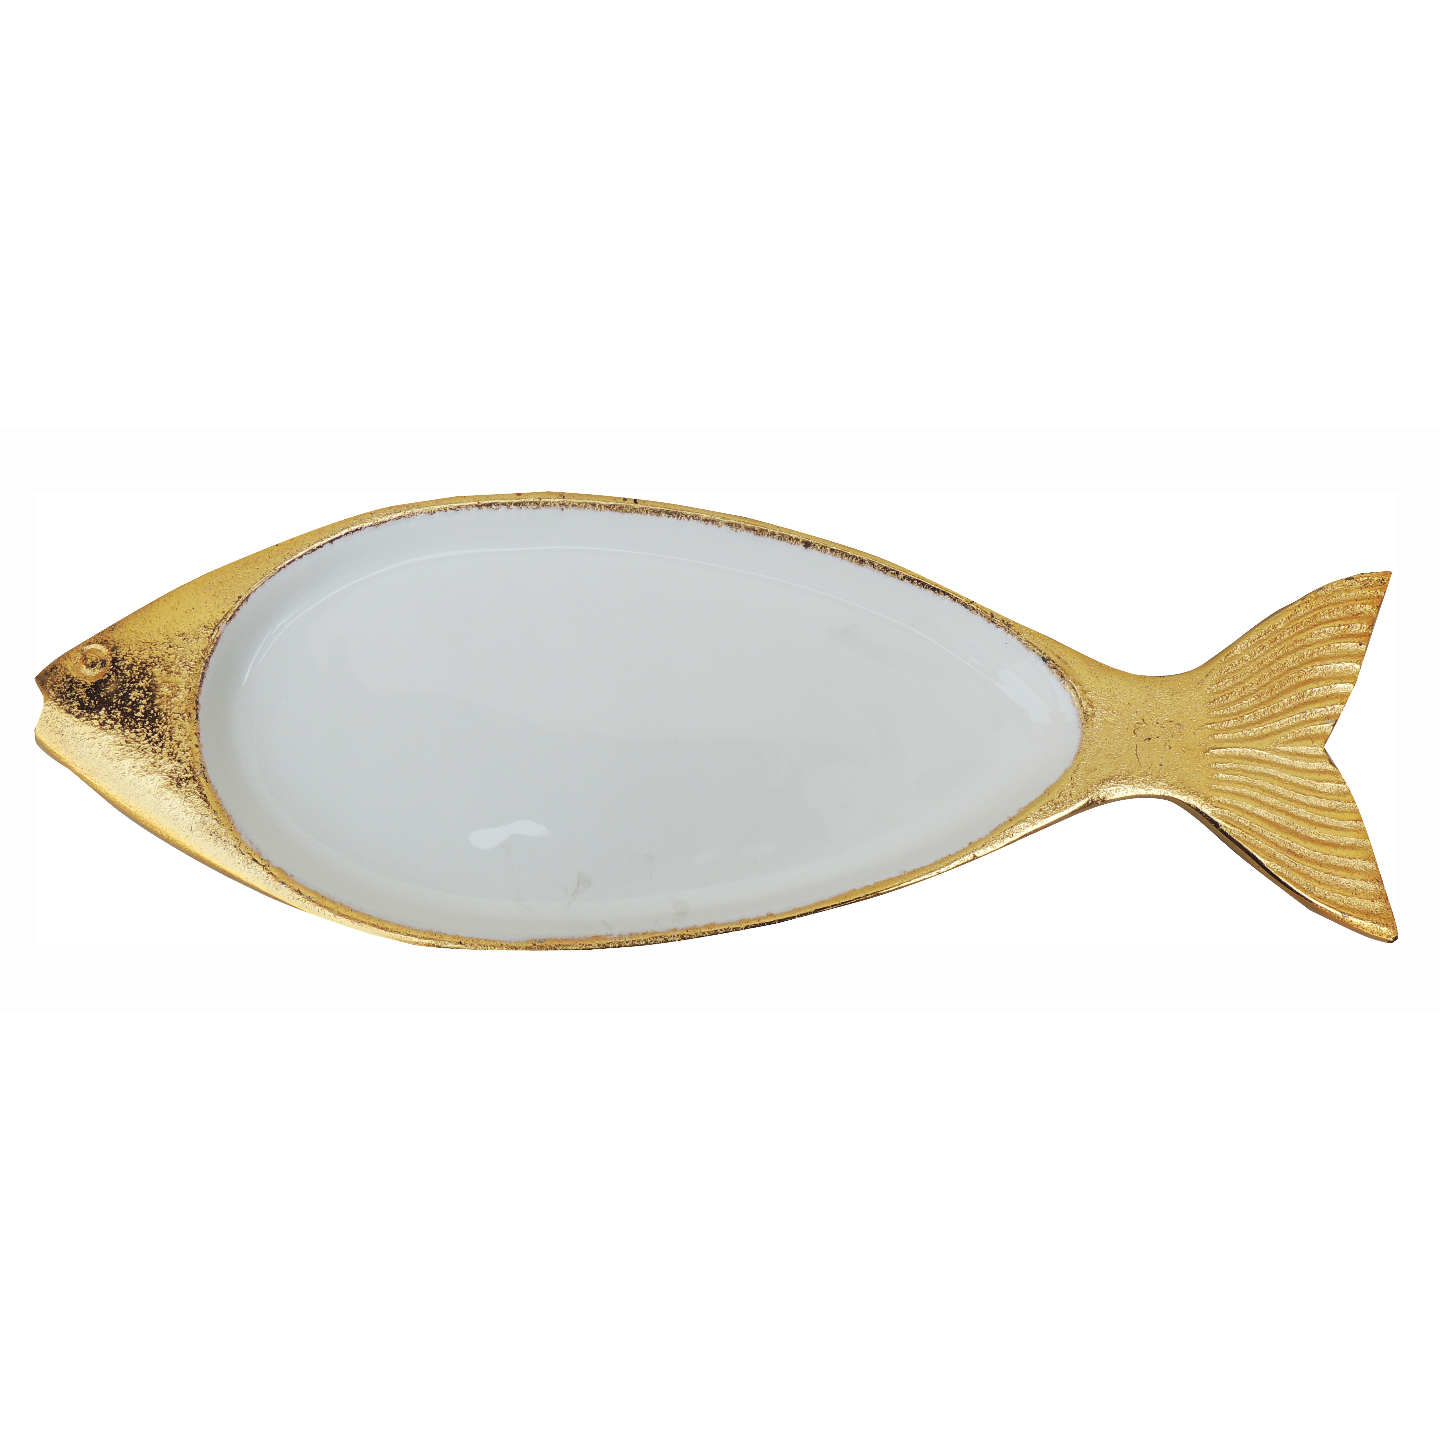 Aluminium Metal Fish Shape Tray Serving Platter Gold and White finish - 16*5 Inch  (A3194/16)